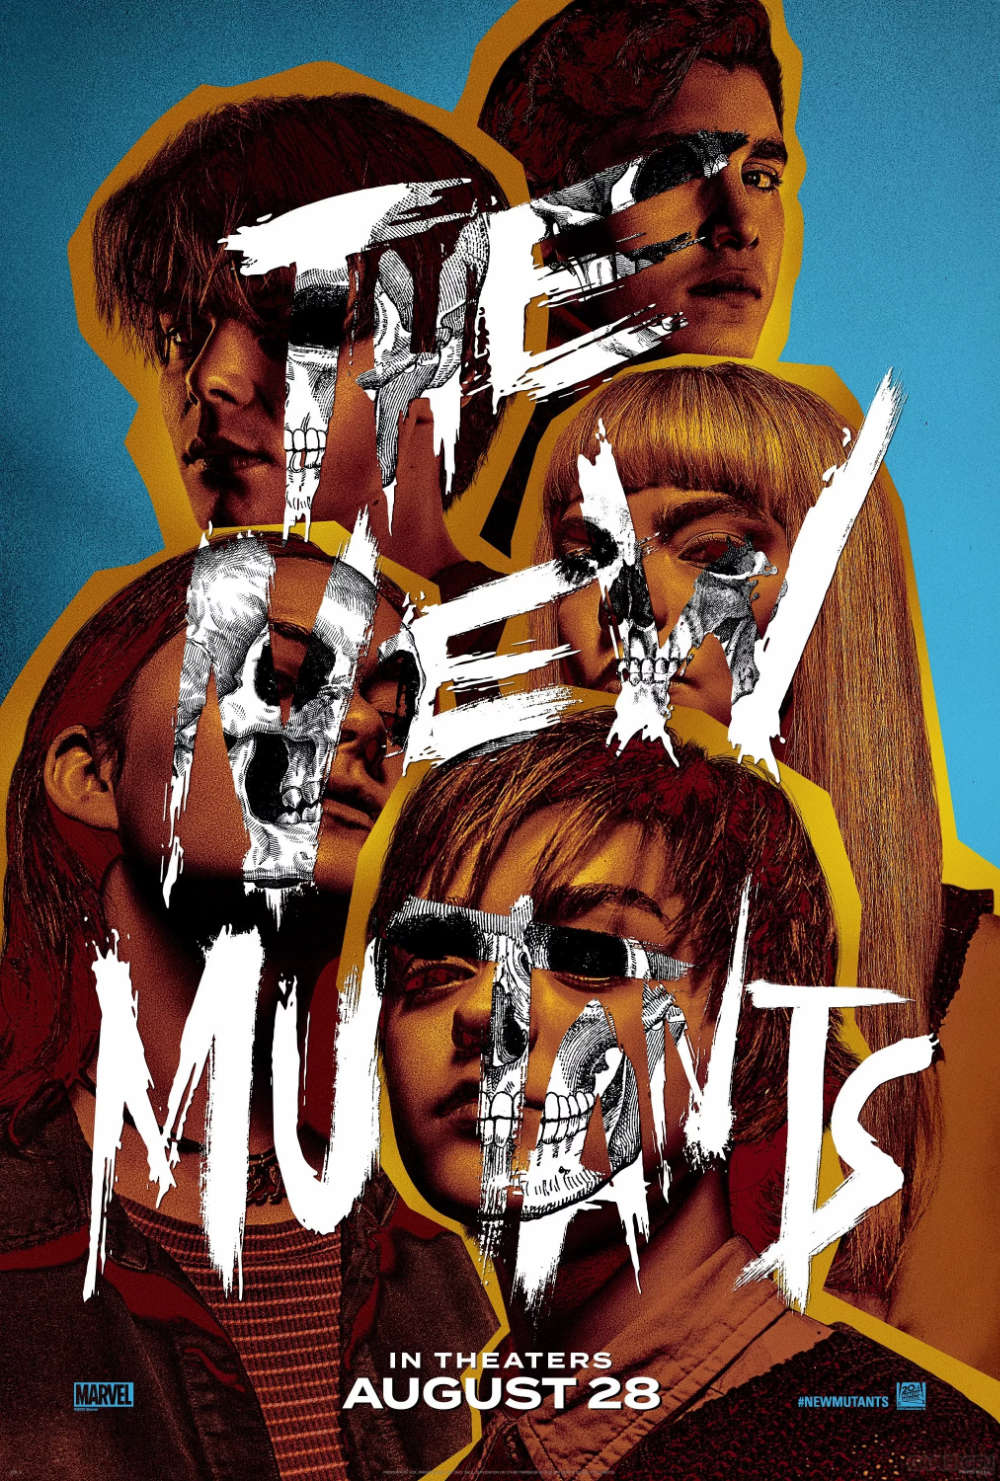 Notes On A Film: The New Mutants